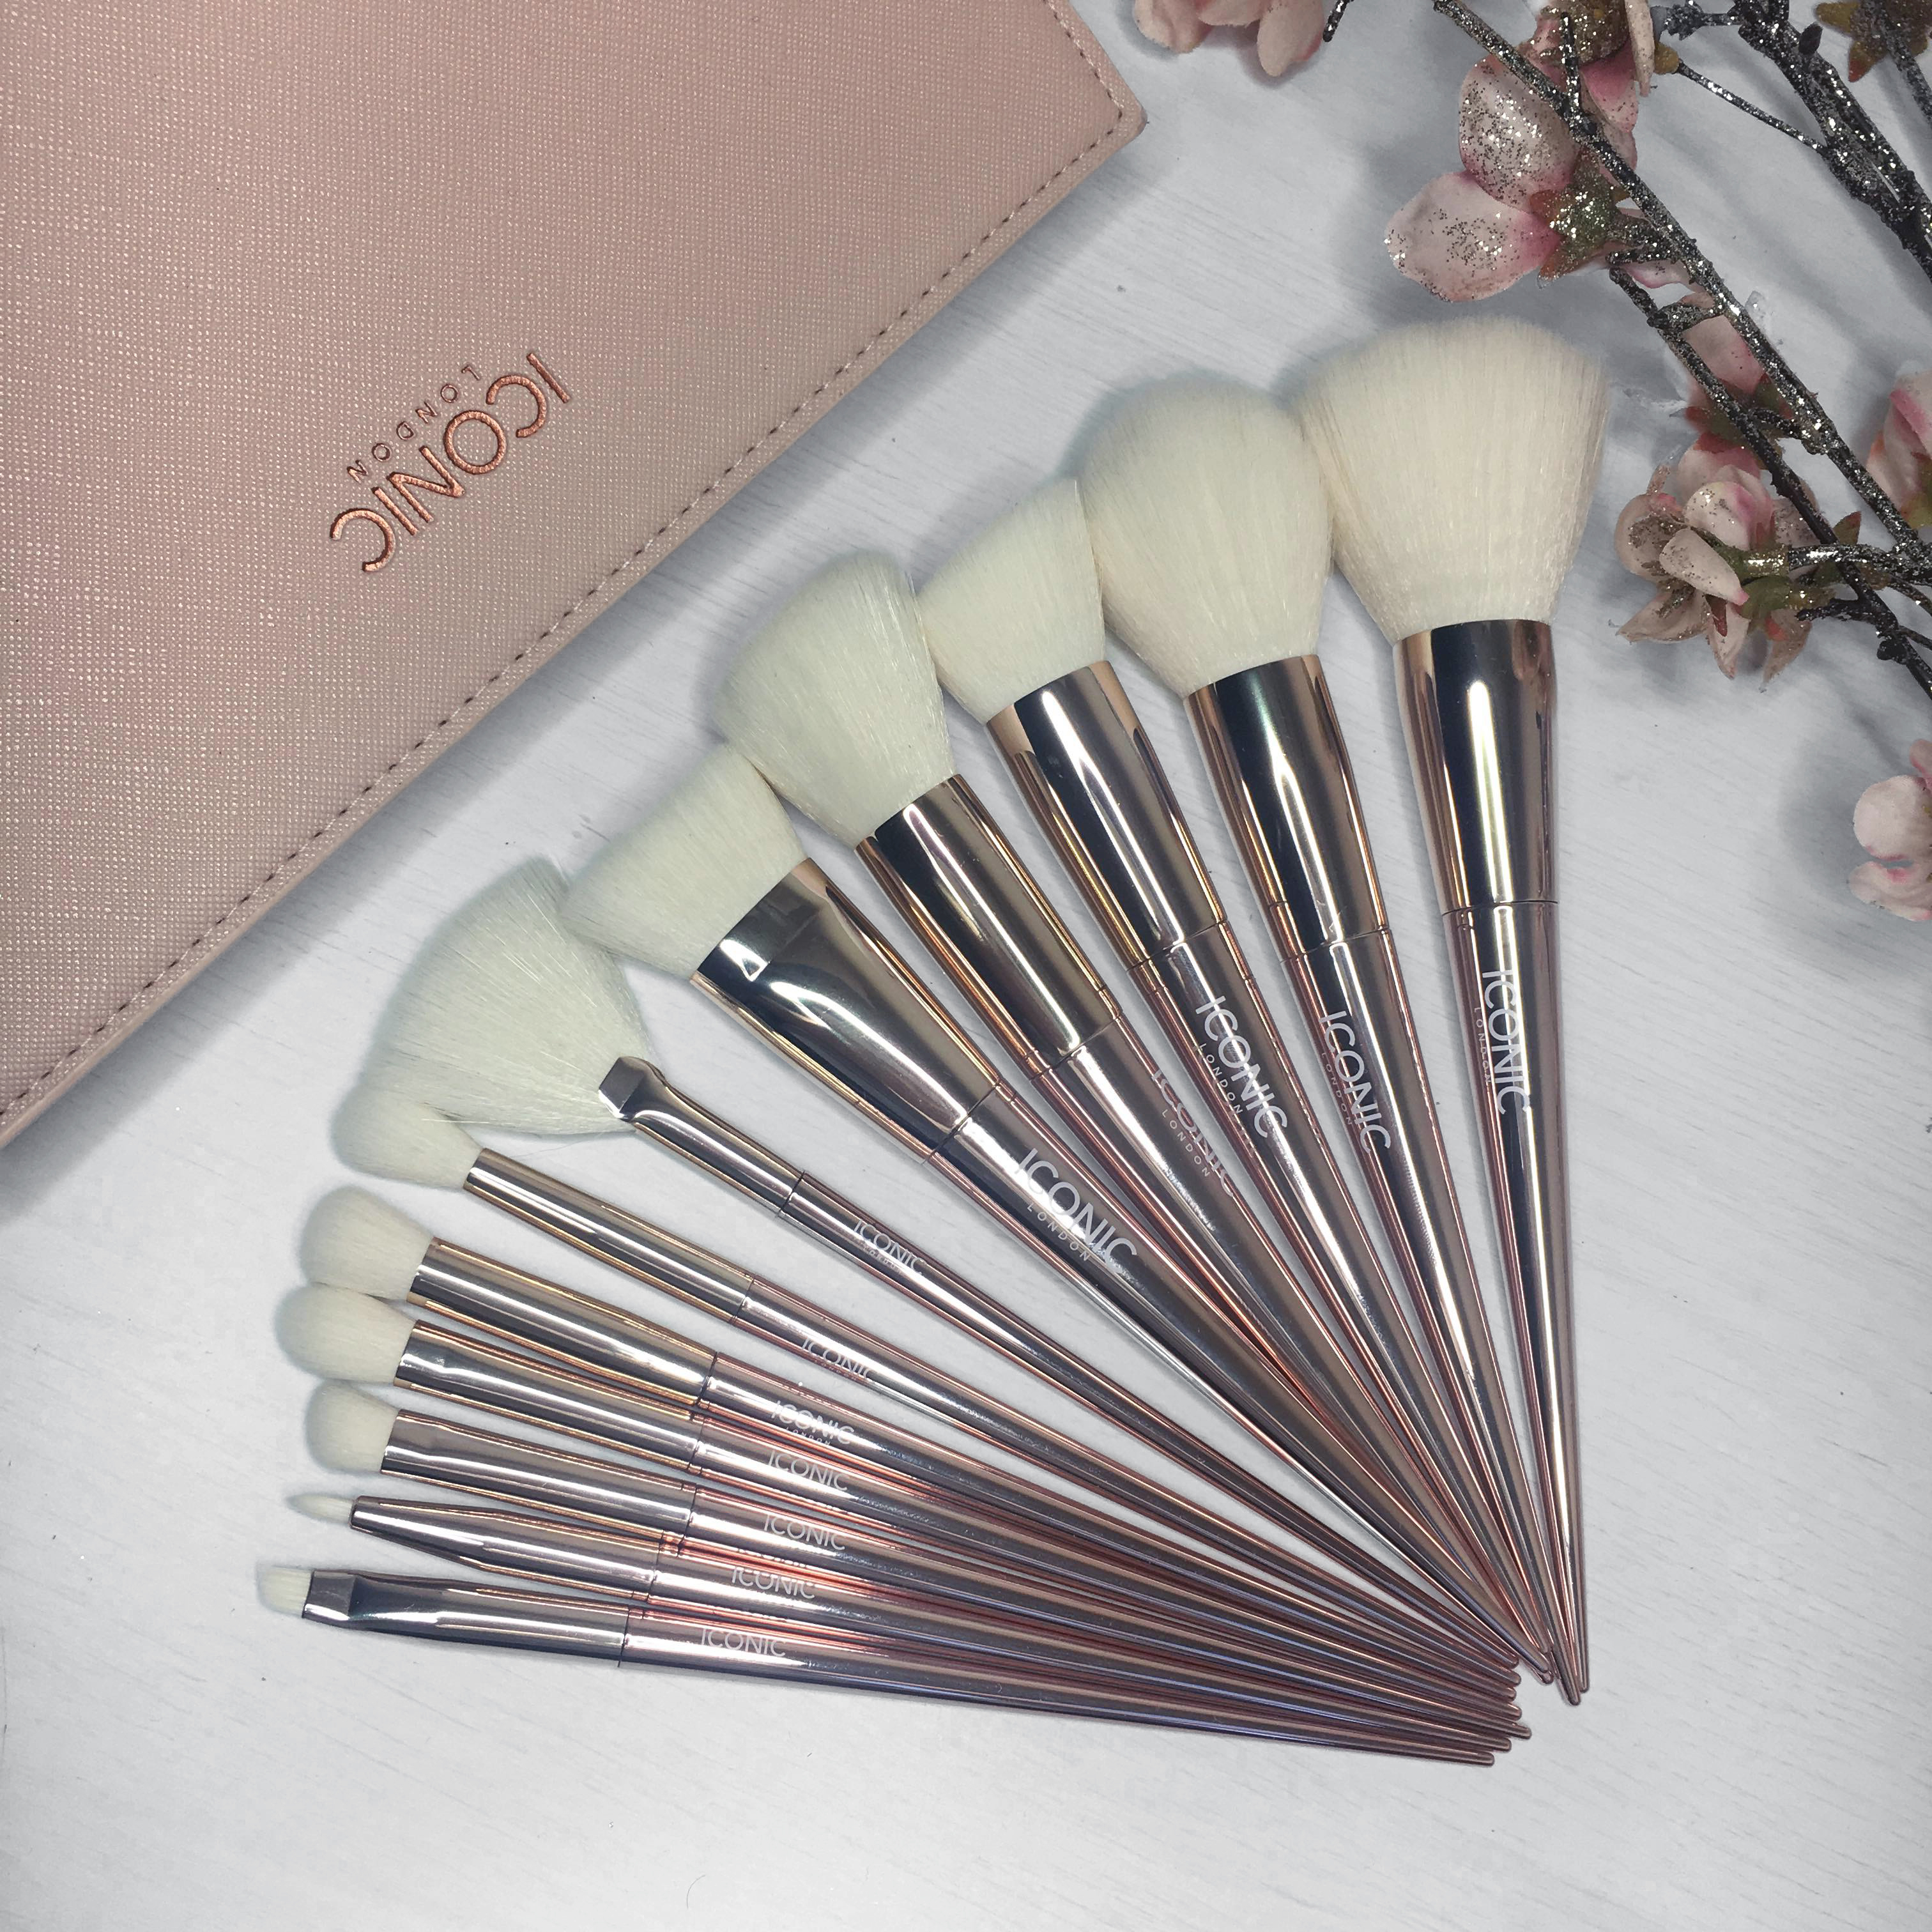 Iconic Brushes - April Blogger Mail Haul - Miss Boux